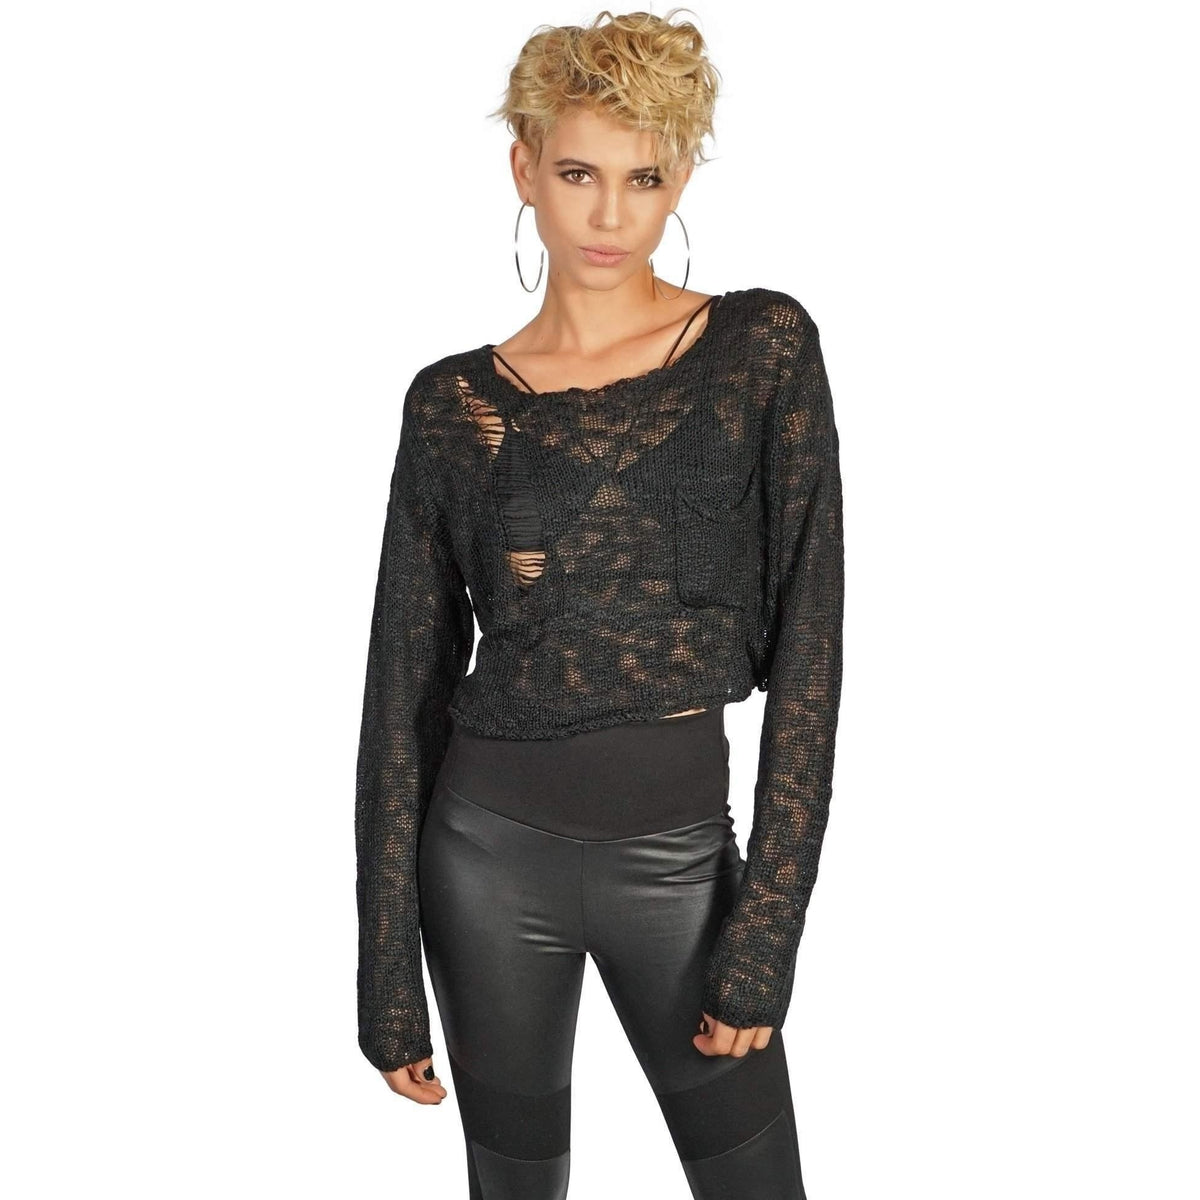 KILL CITY LADIES SLOUCH BLACK CROPPED SWEATER - Salemonster